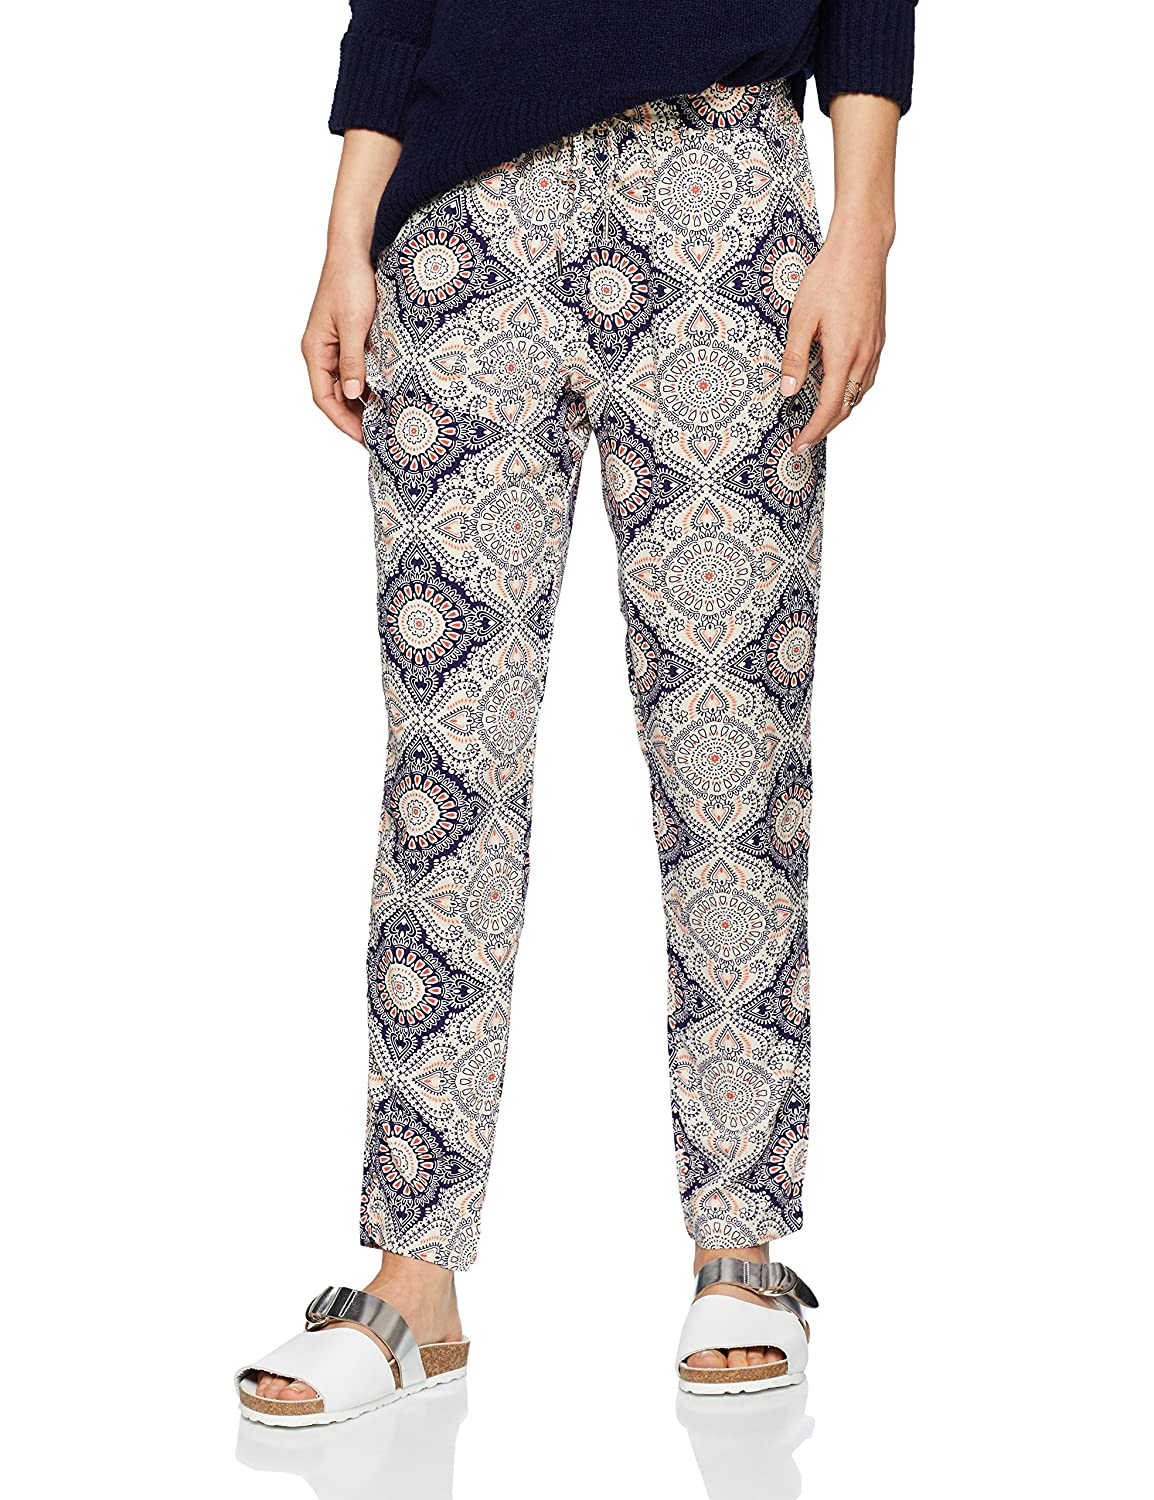 Womens Jasper Tropical Print Trousers New Look Clearance With Credit Card Outlet Fast Delivery Original bOR1S0jGk